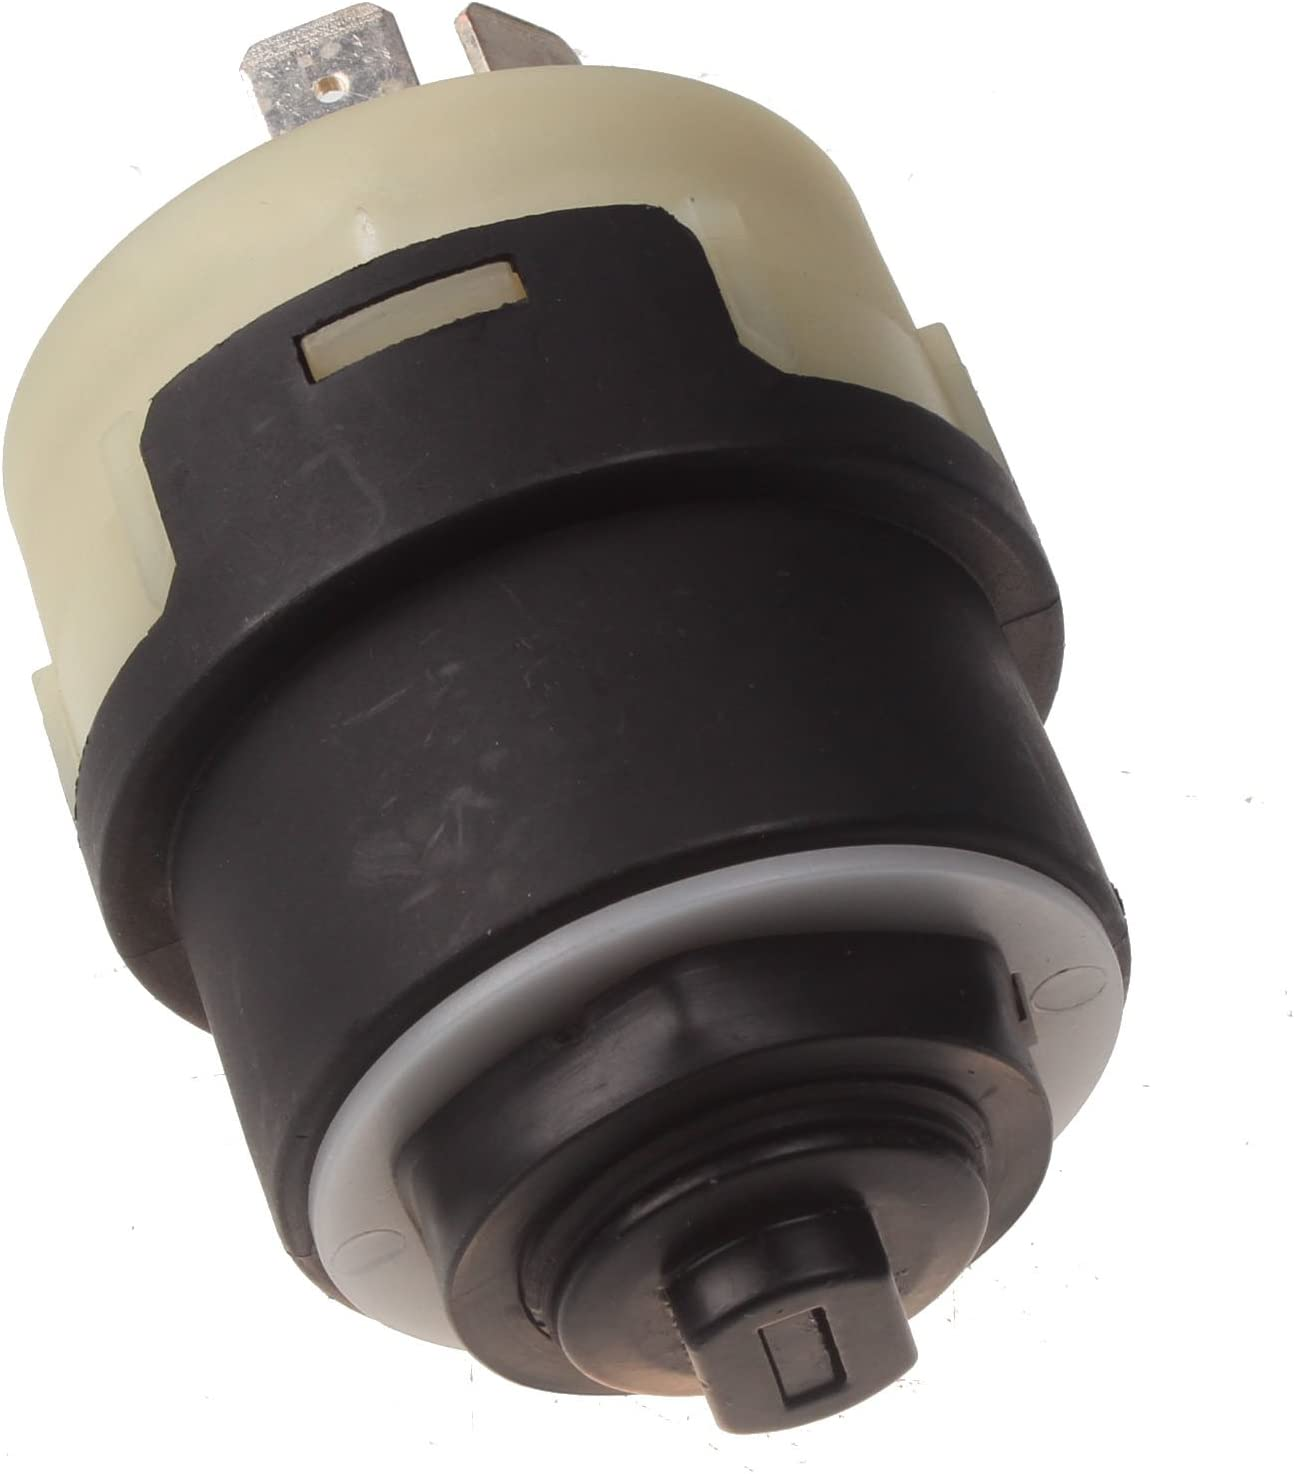 New Ignition Switch With 2 Keys 701-80184 For JCB 802.7 SUPER